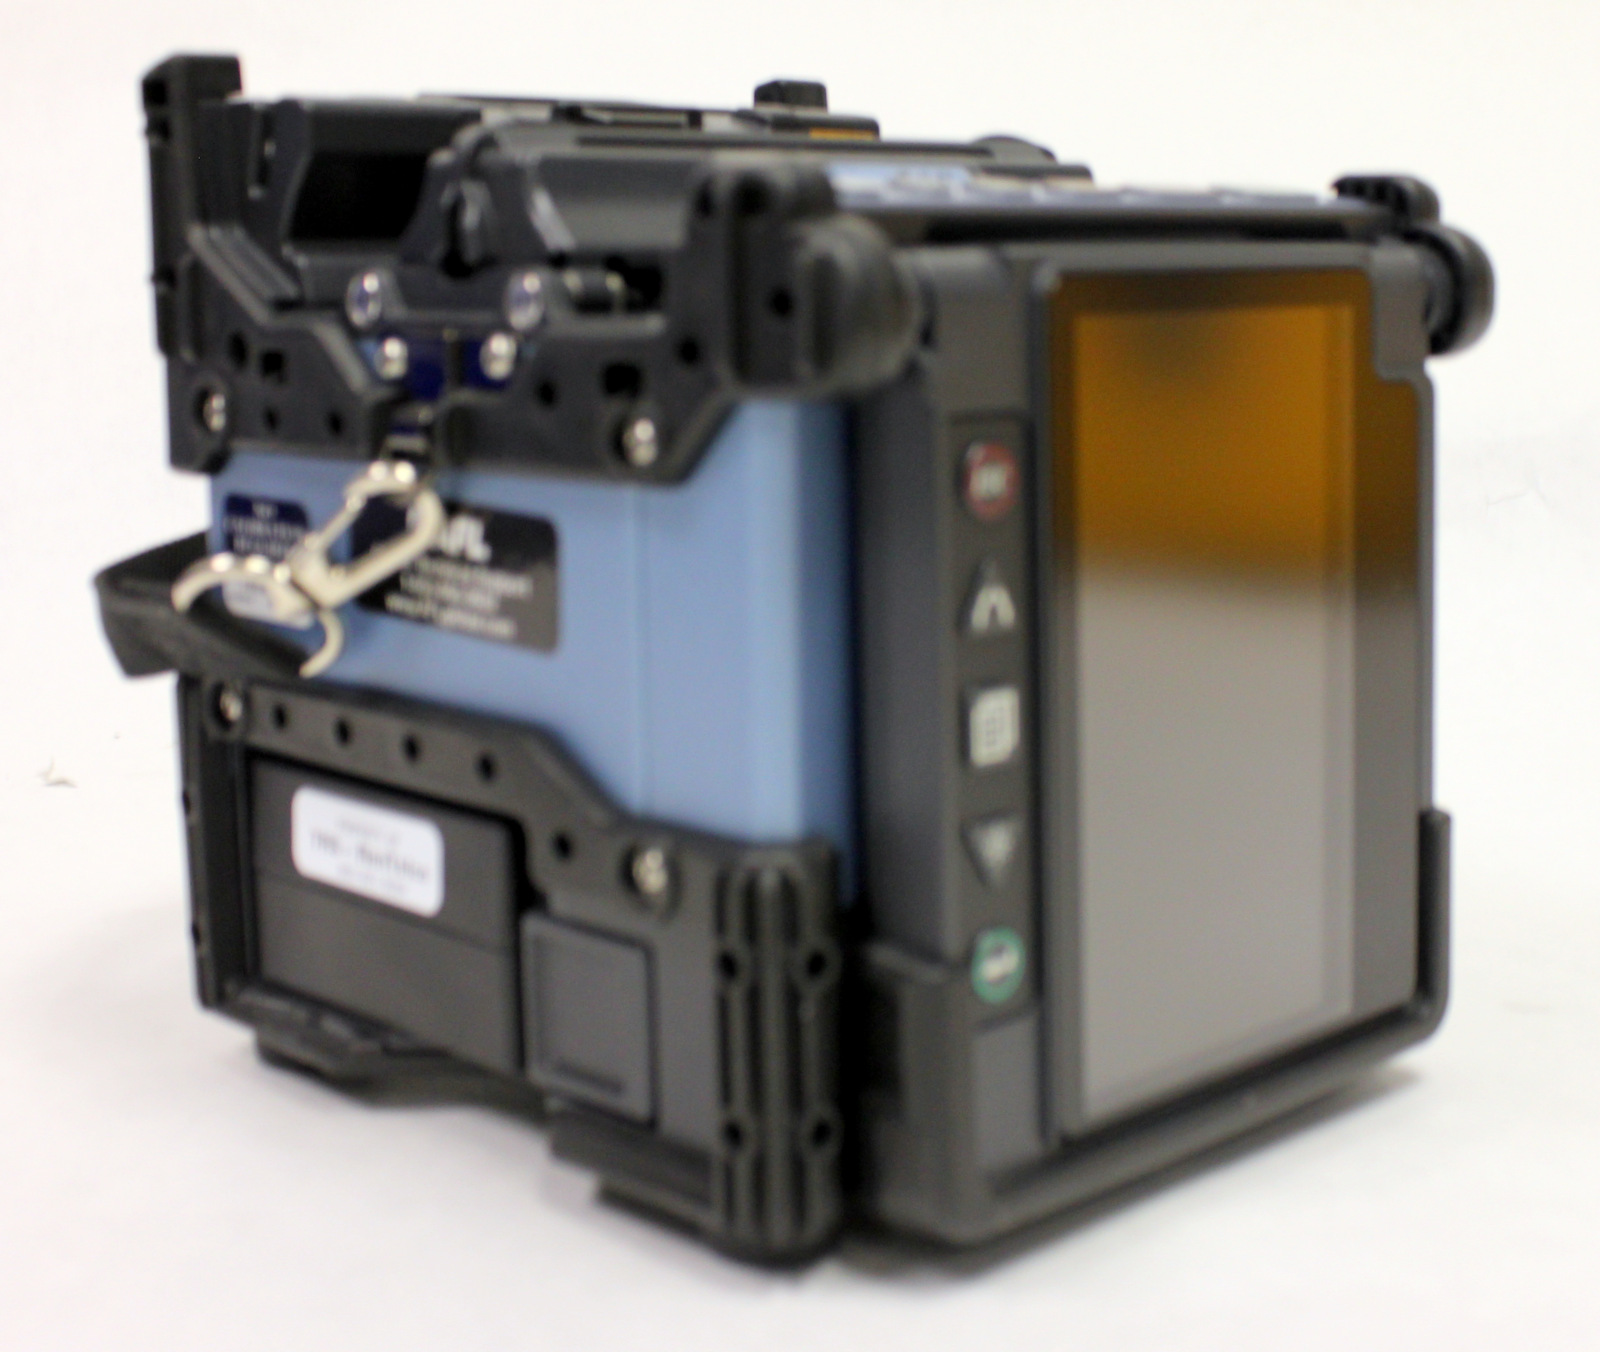 fujikura-fsm-70s-single-fiber-fusion-splicer